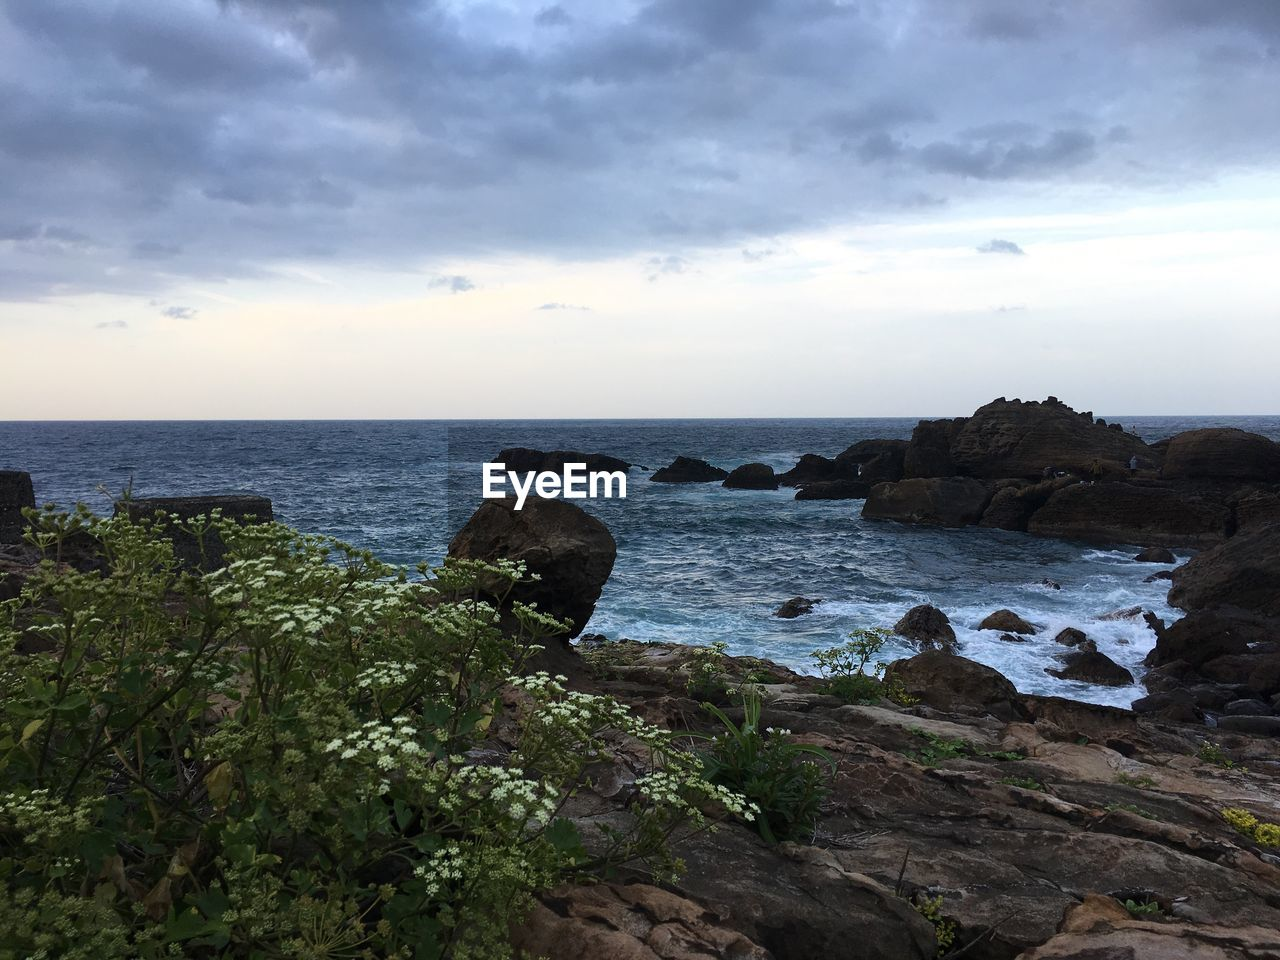 sky, sea, water, scenics - nature, beauty in nature, cloud - sky, horizon, horizon over water, rock, tranquil scene, land, tranquility, rock - object, solid, beach, nature, no people, non-urban scene, rock formation, outdoors, rocky coastline